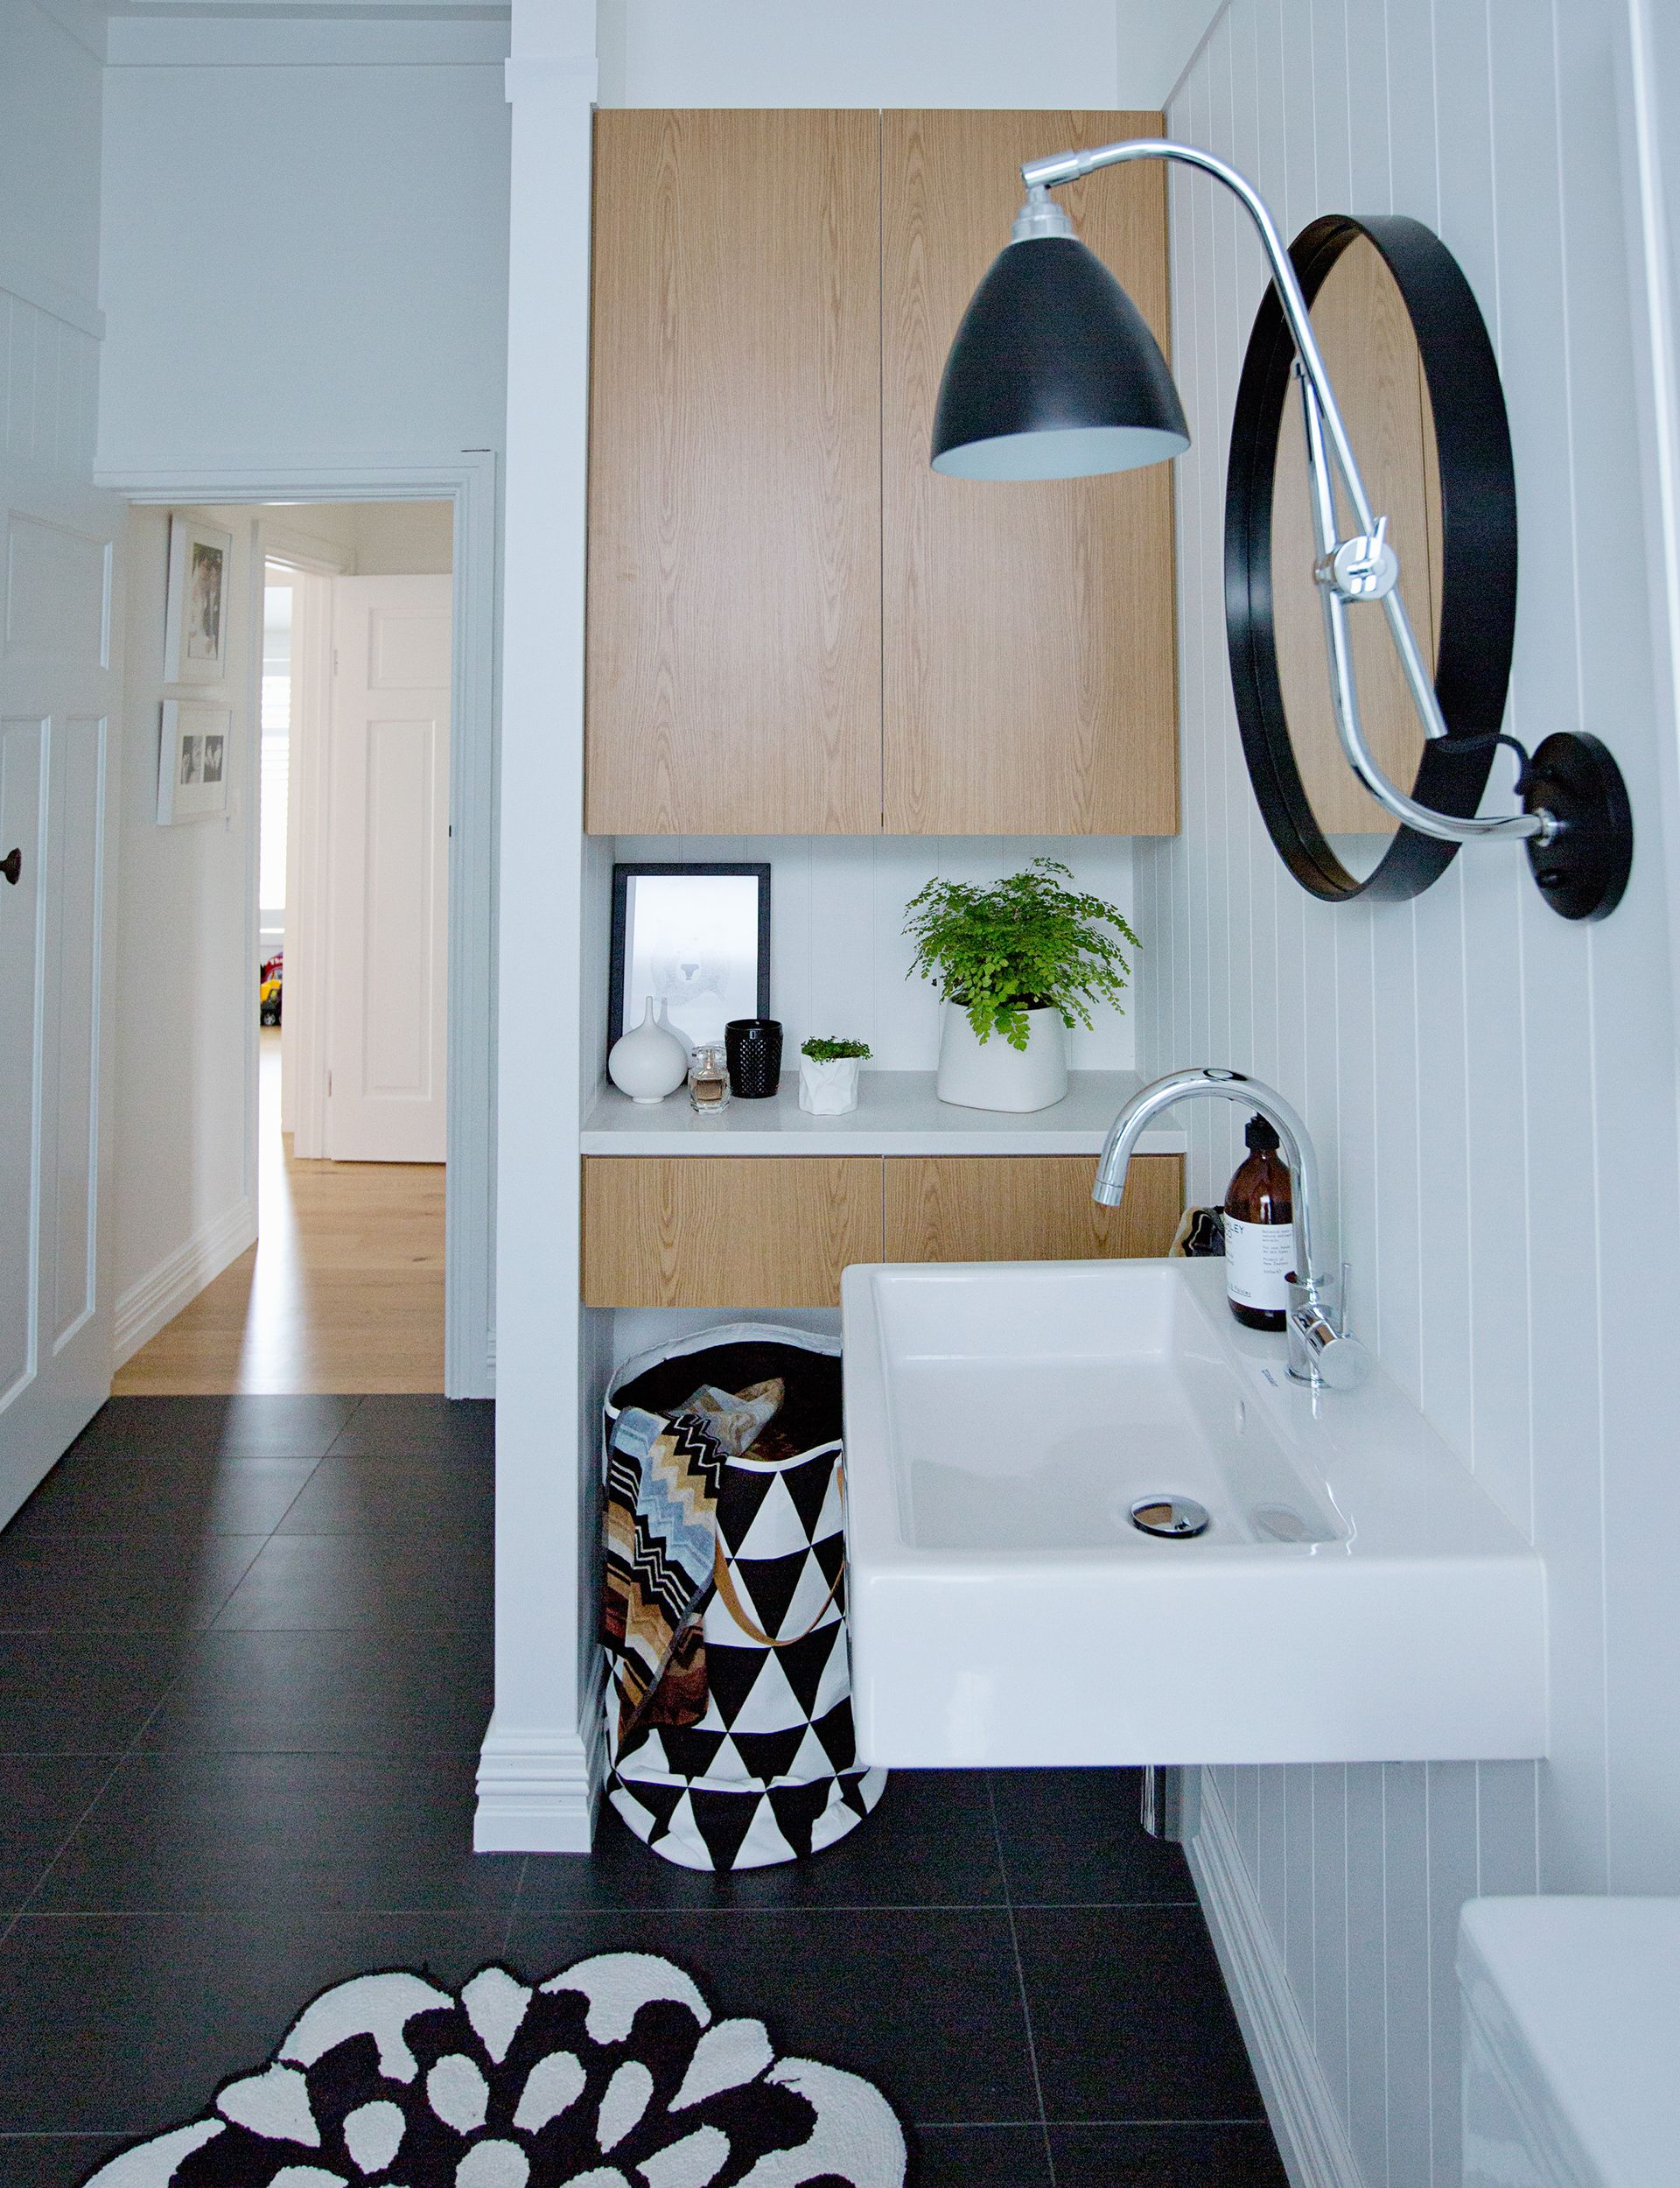 Renovation inspiration from a 1930s bungalow   Bathrooms   Pinterest ...